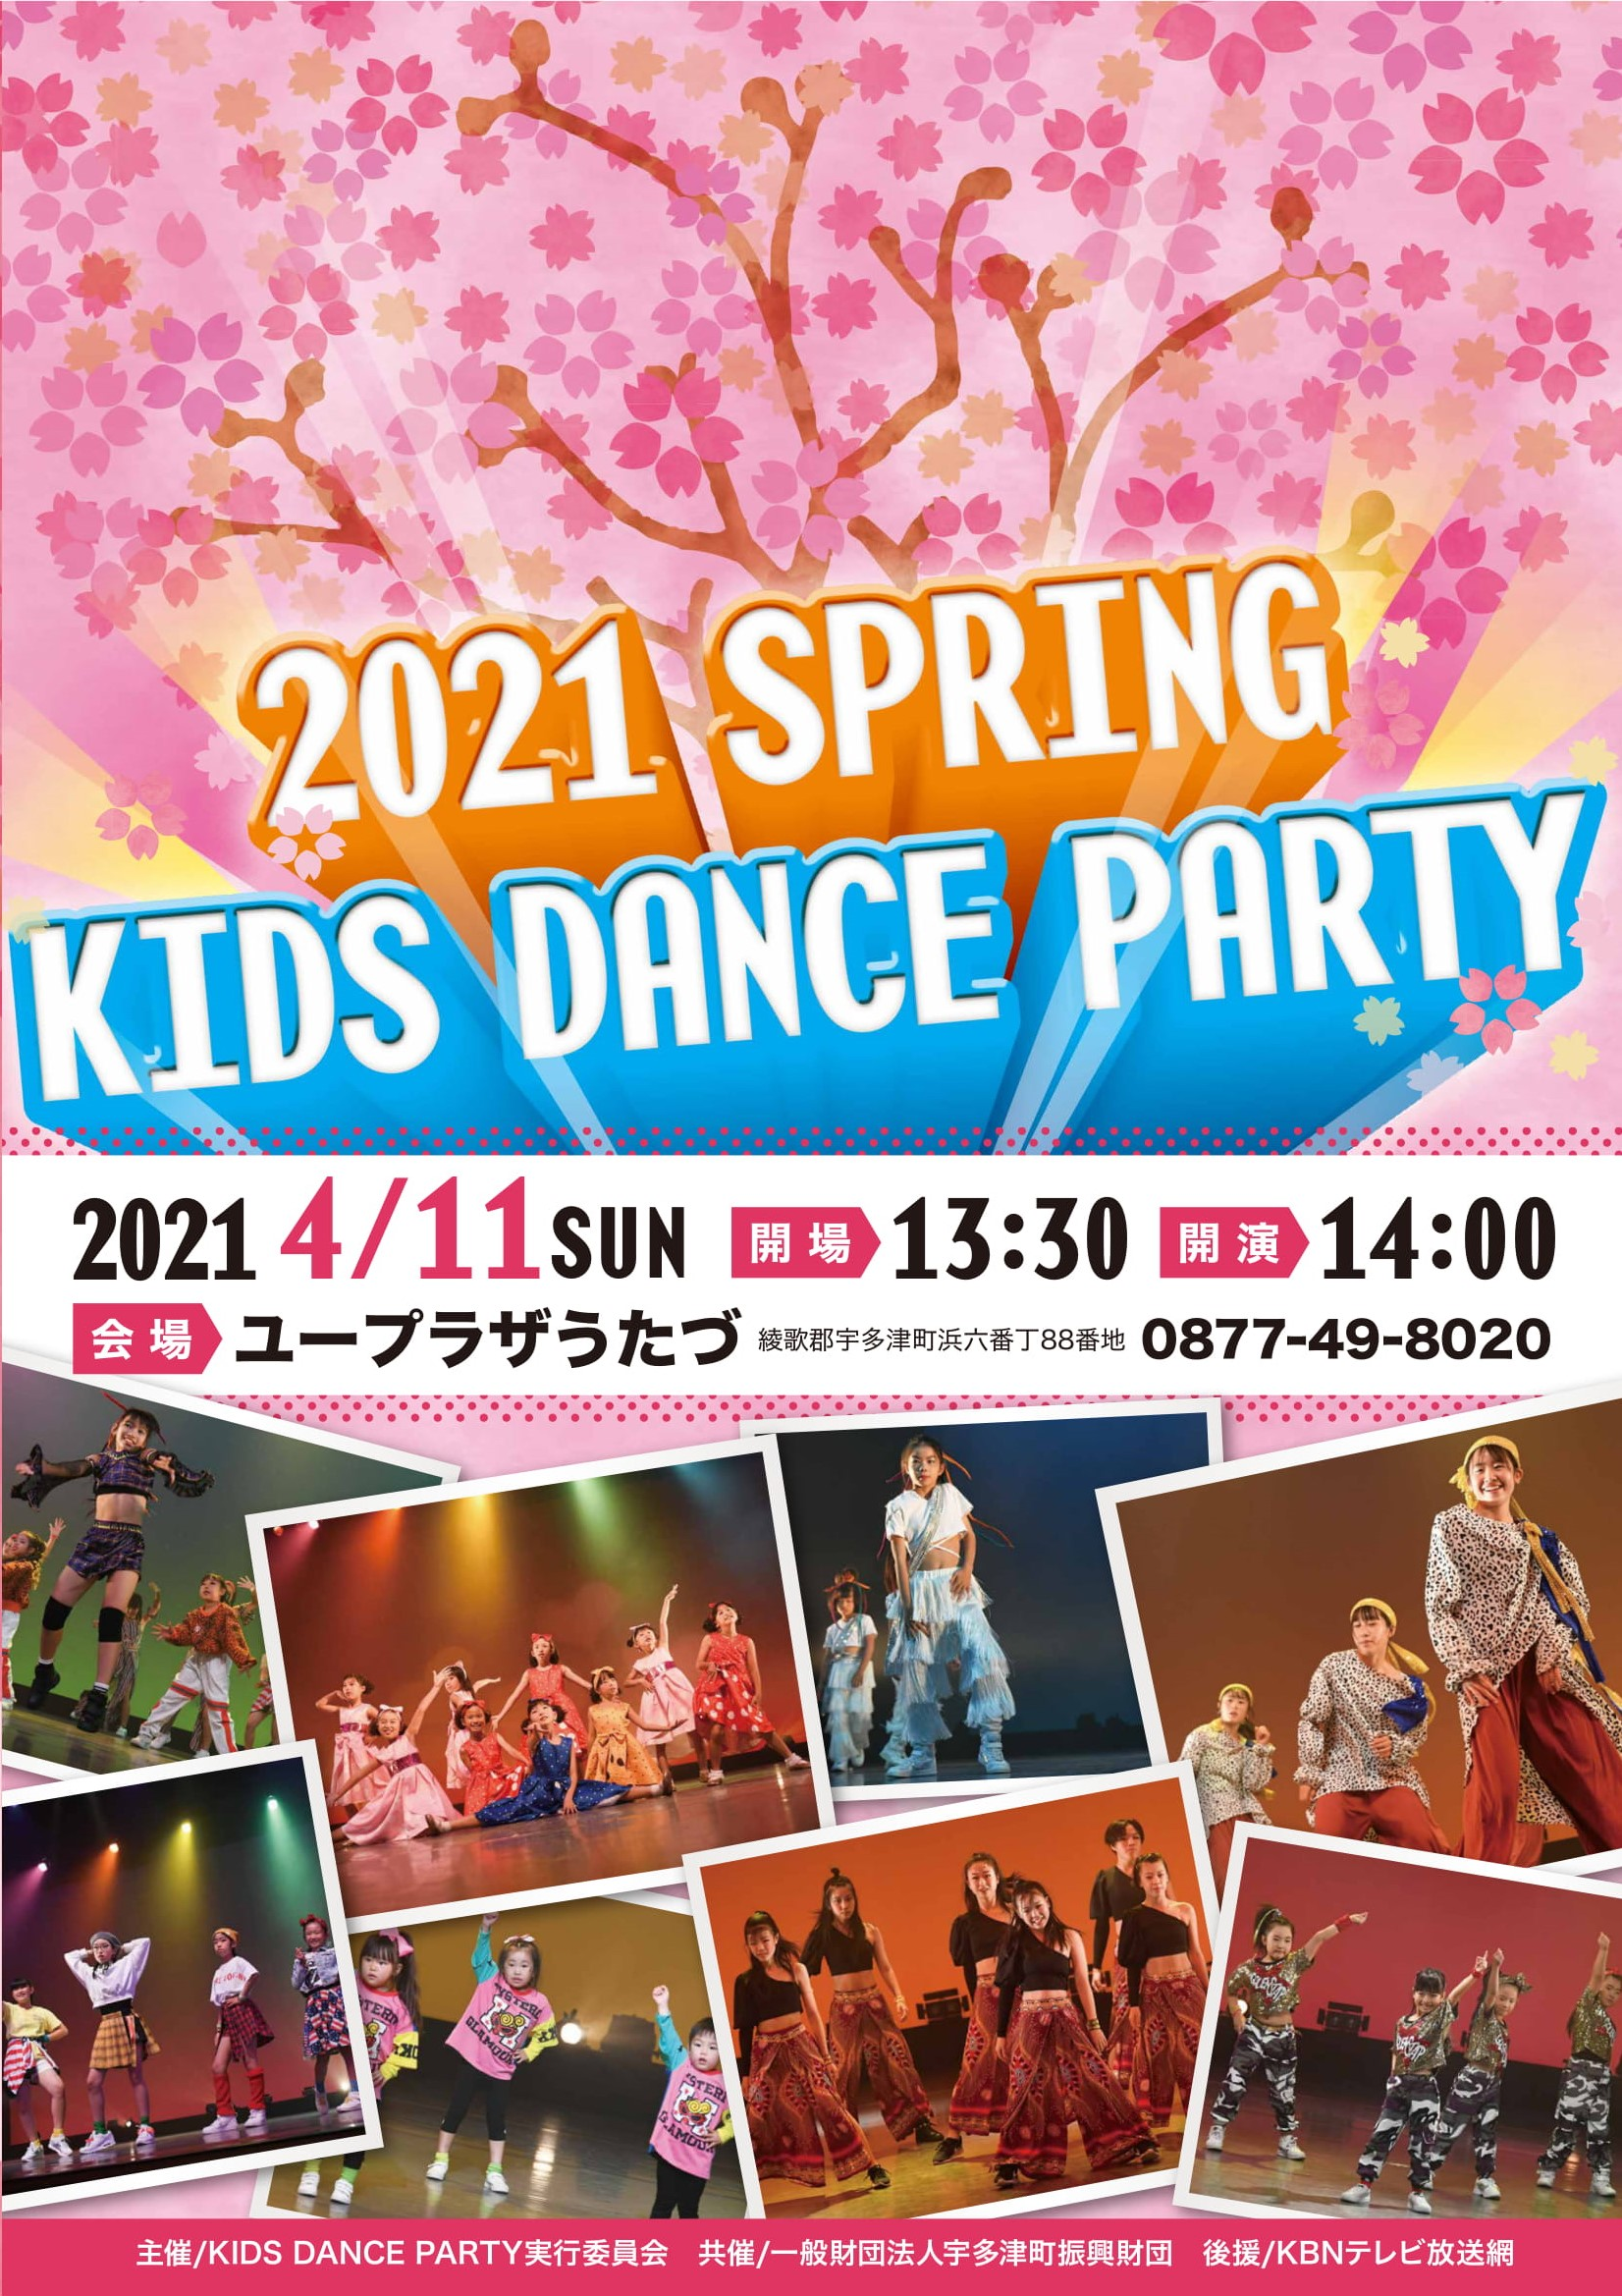 2021 SPRING KIDS DANCE PARTY【終了しました】